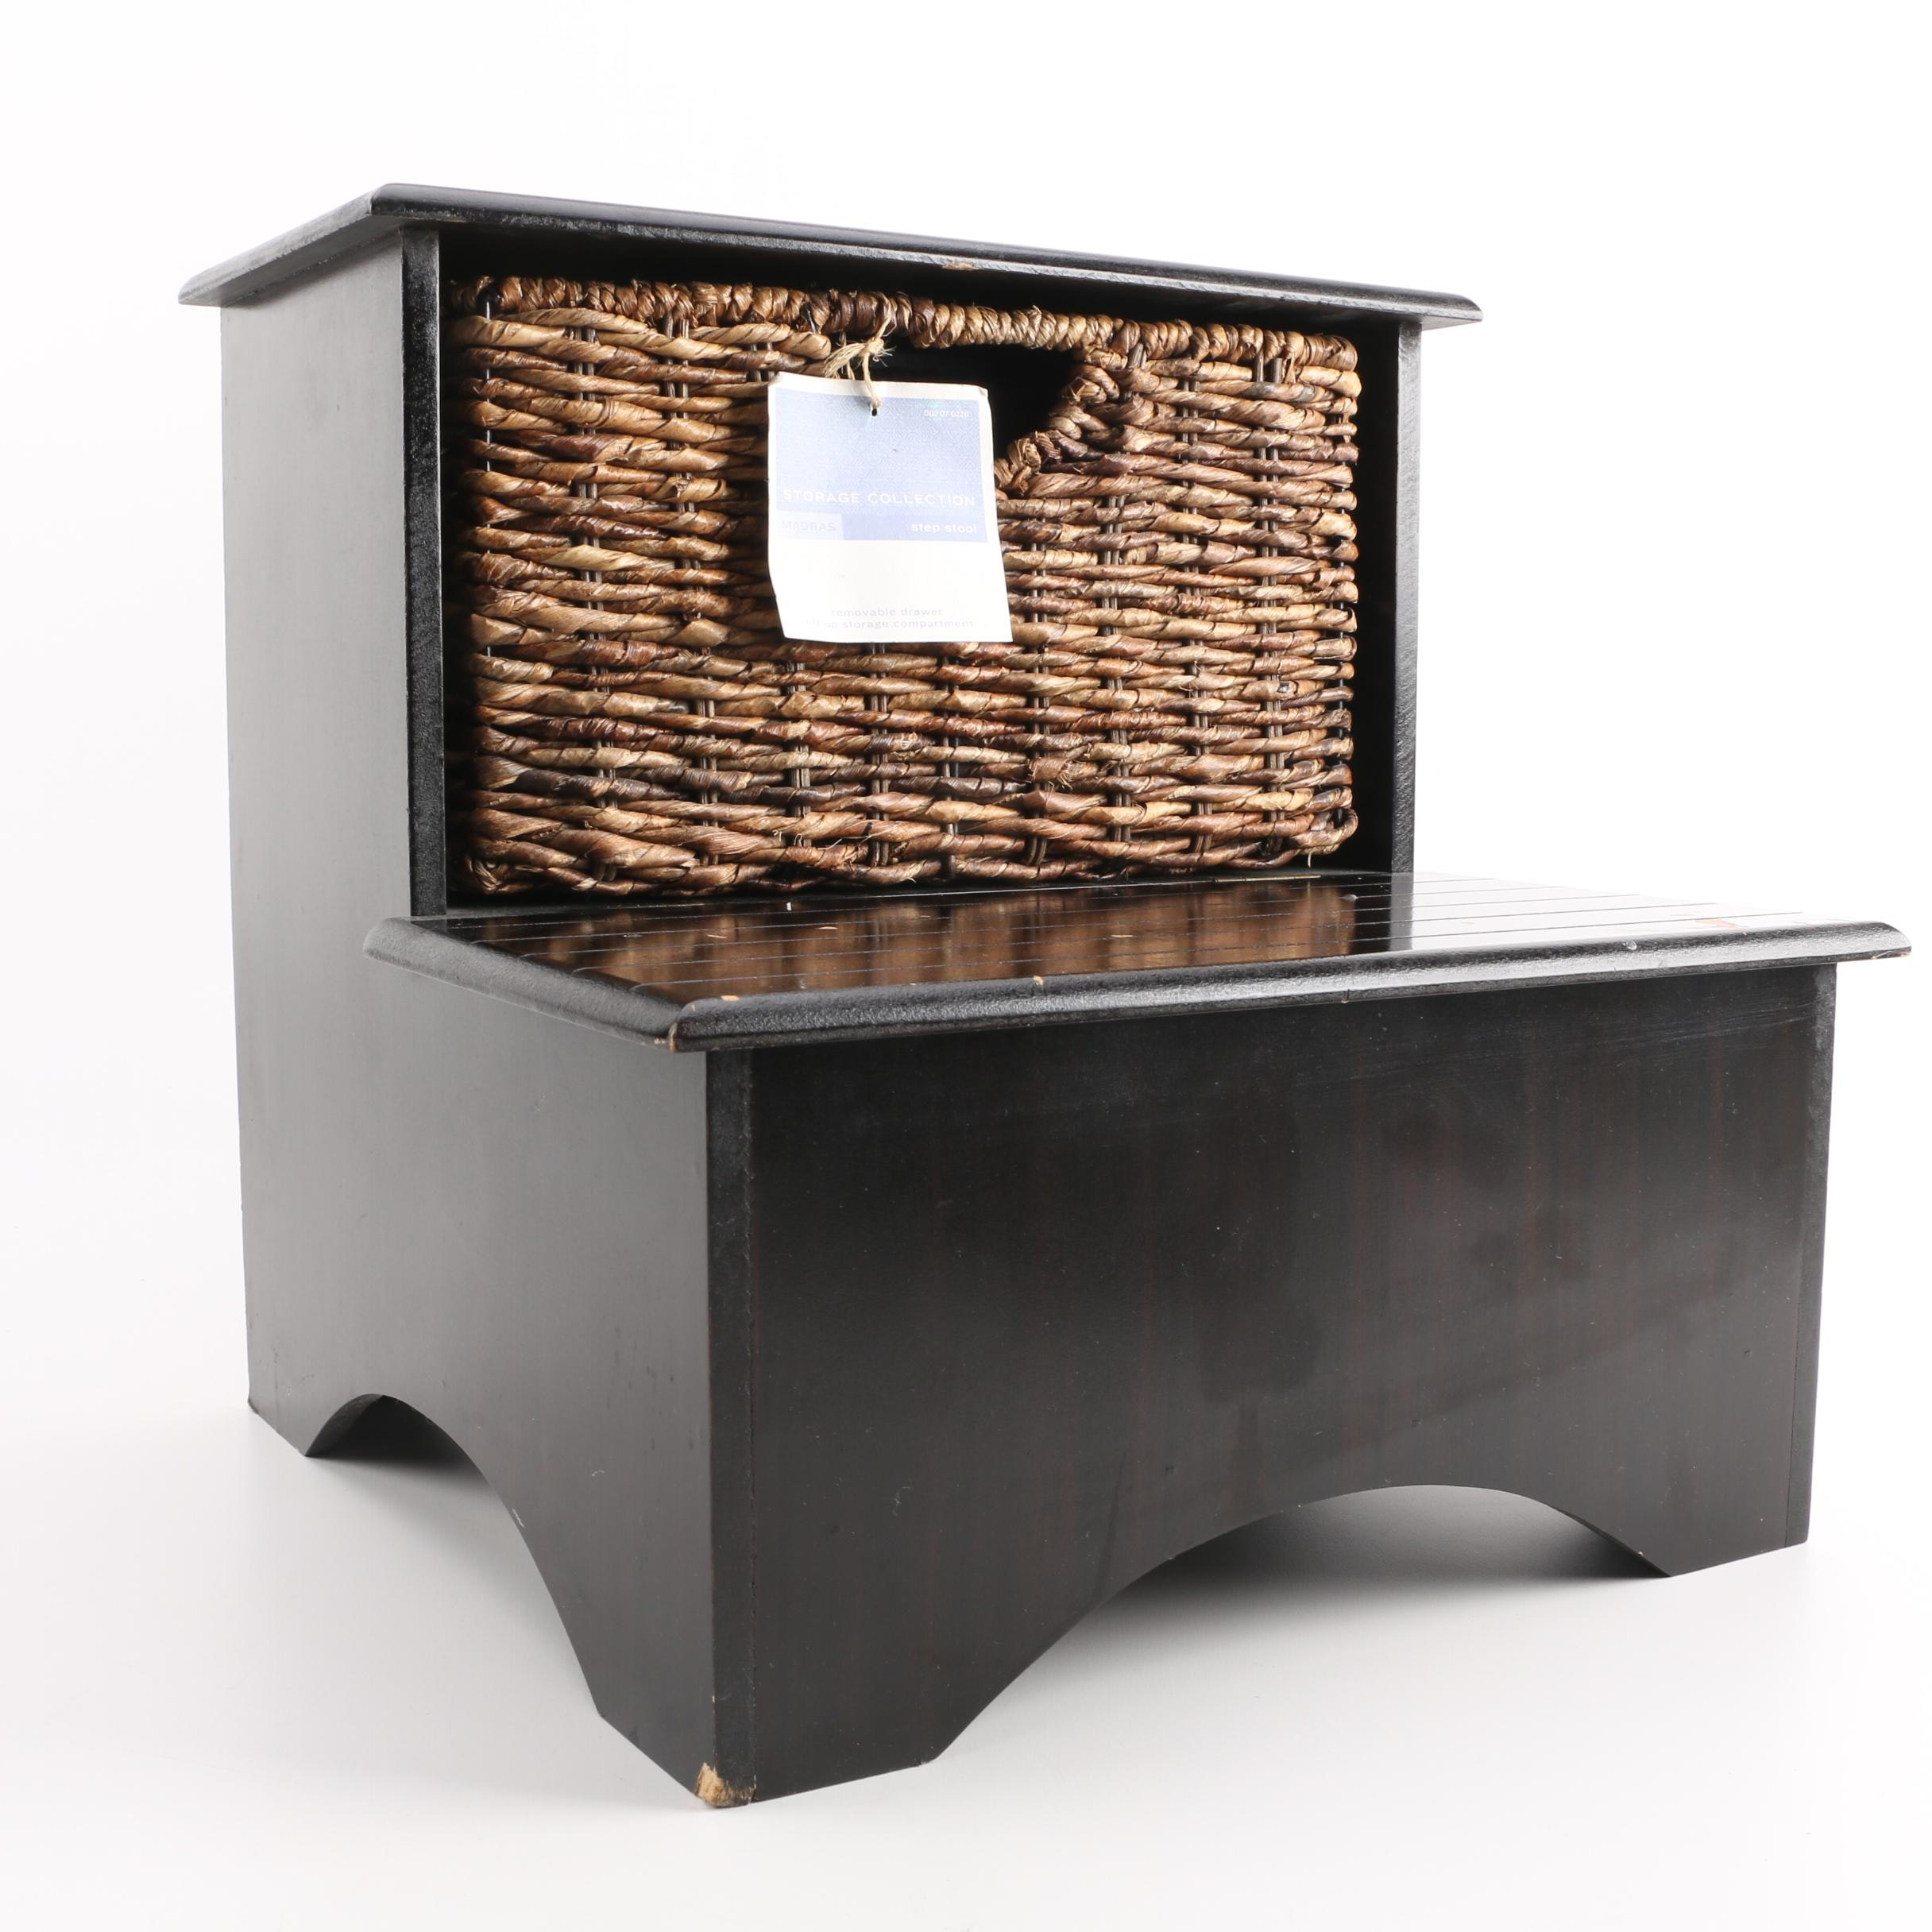 Step Stool With Storage Compartments And Basket ...